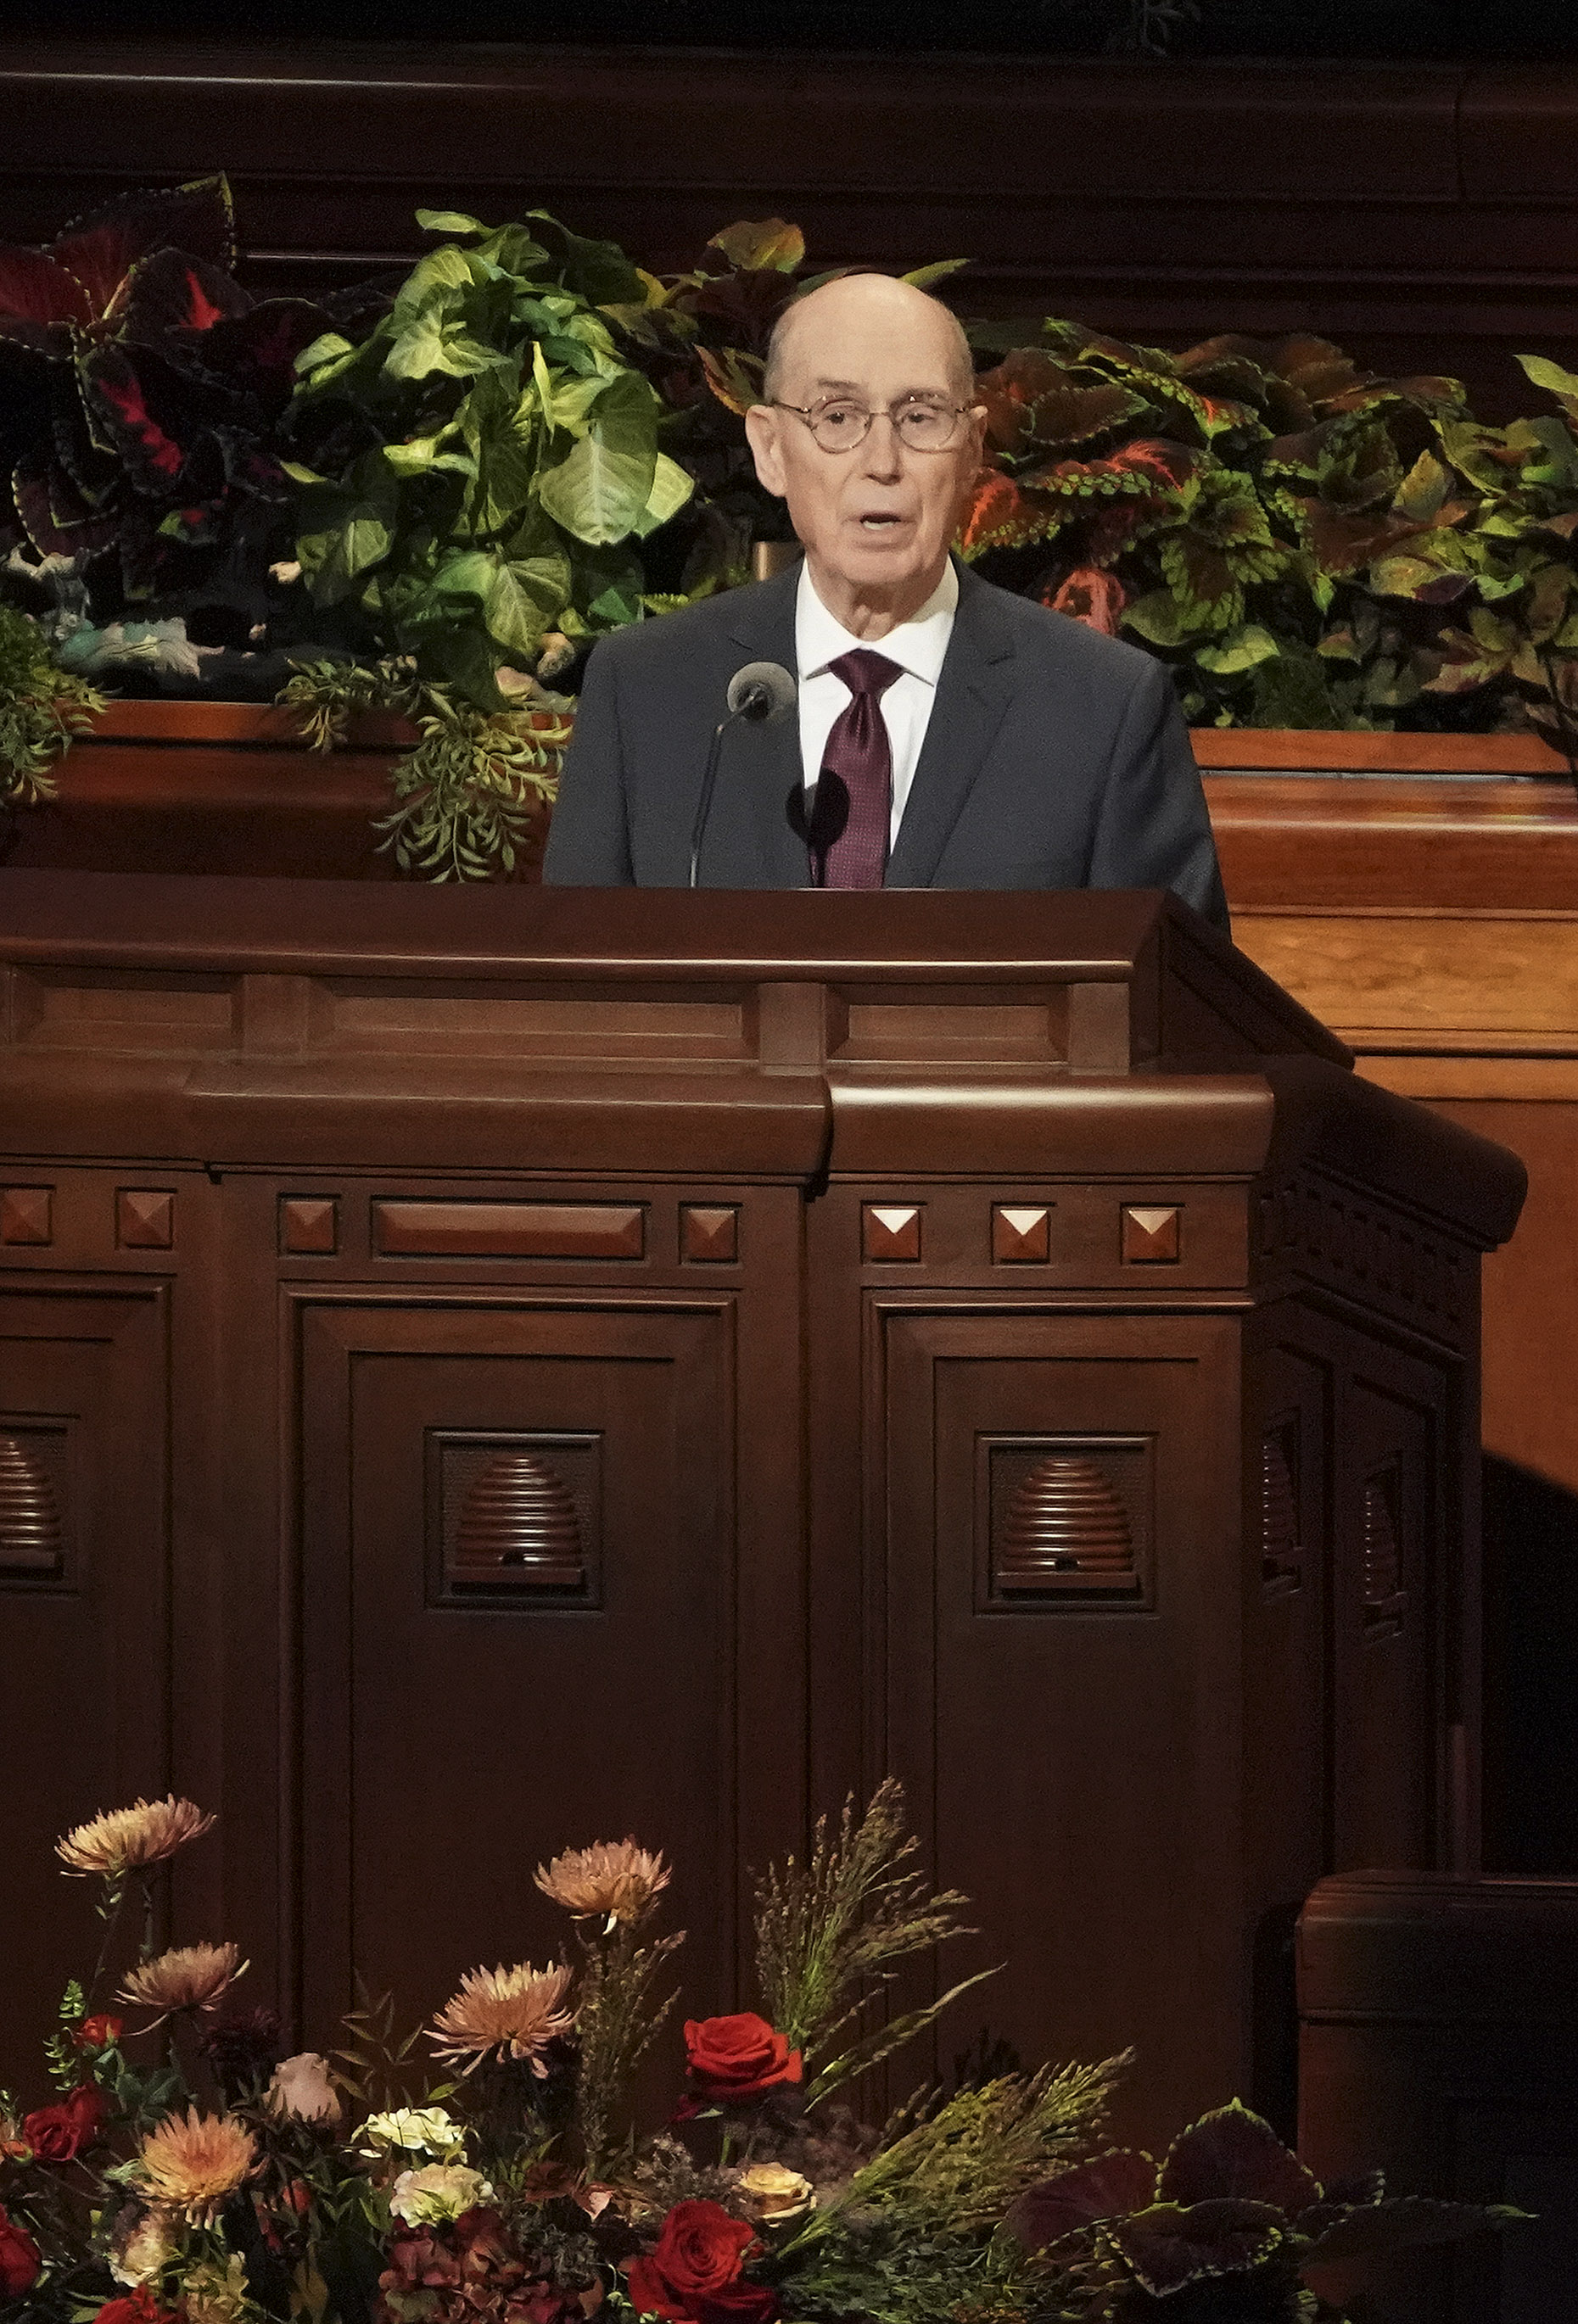 President Henry B. Eyring, second counselor First Presidency, speaks during the Sunday afternoon session of the 189th Semiannual General Conference of The Church of Jesus Christ of Latter-day Saints in Salt Lake City on Oct. 6, 2019.